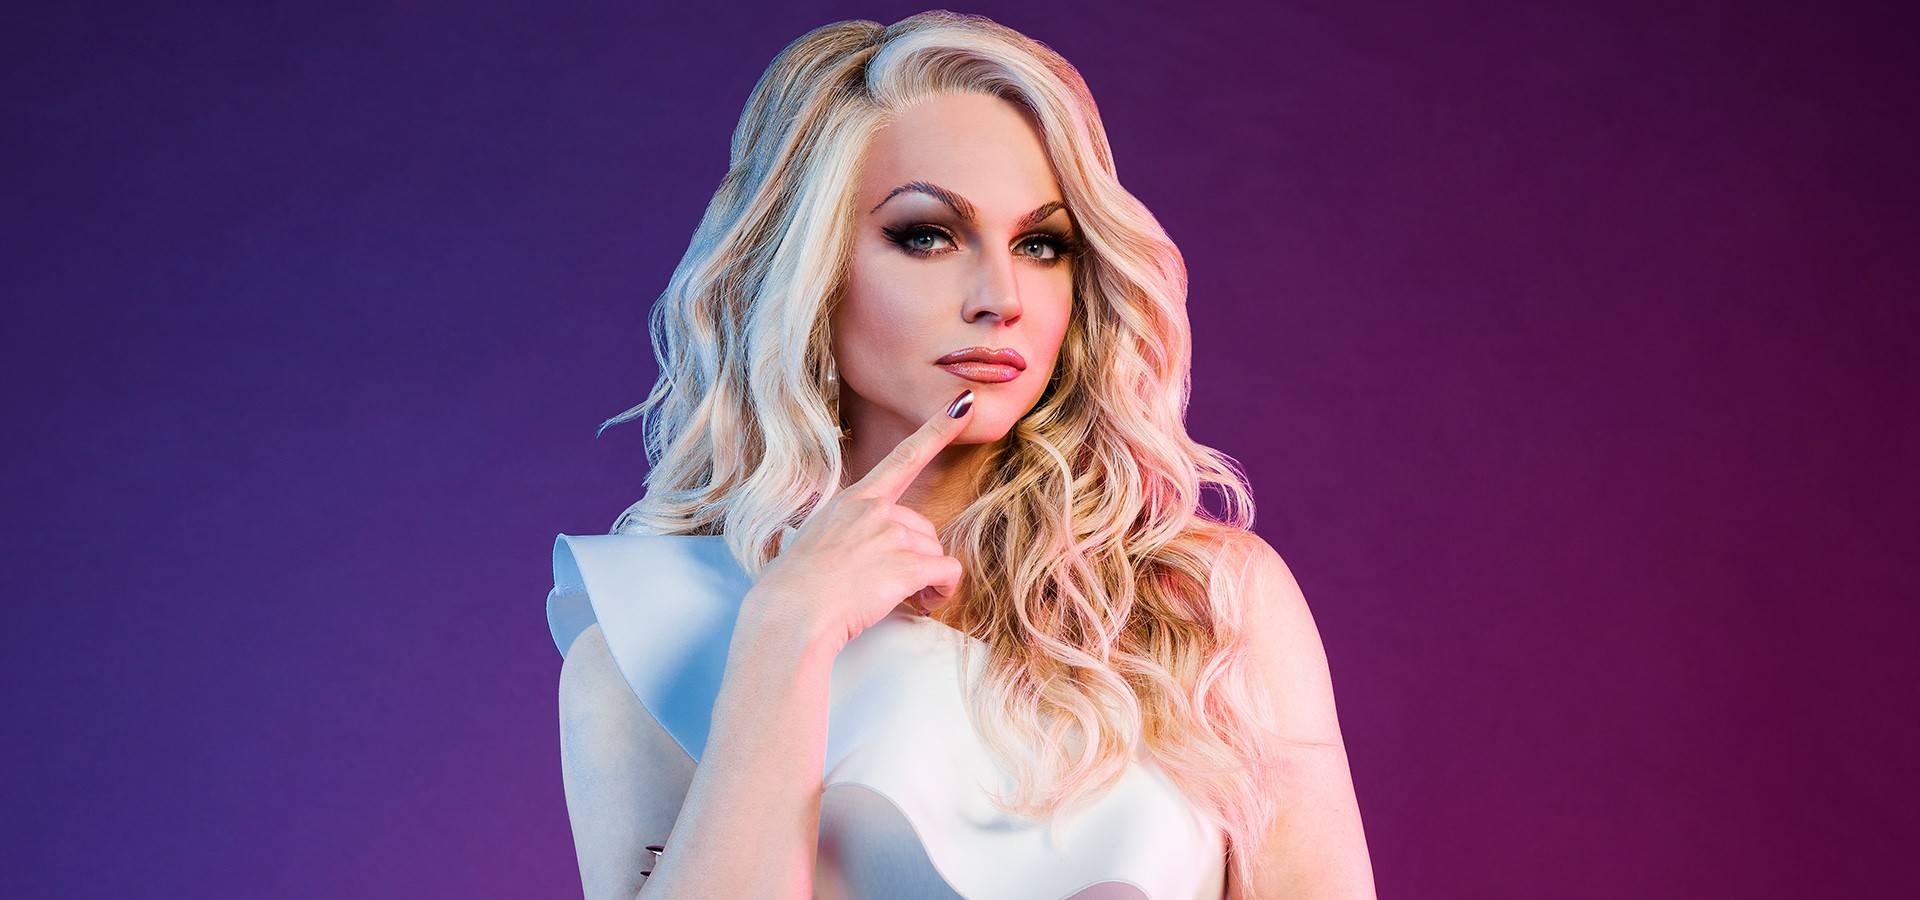 Courtney Act. Credit: https://www.eonline.com/uk/shows/the_bi_life